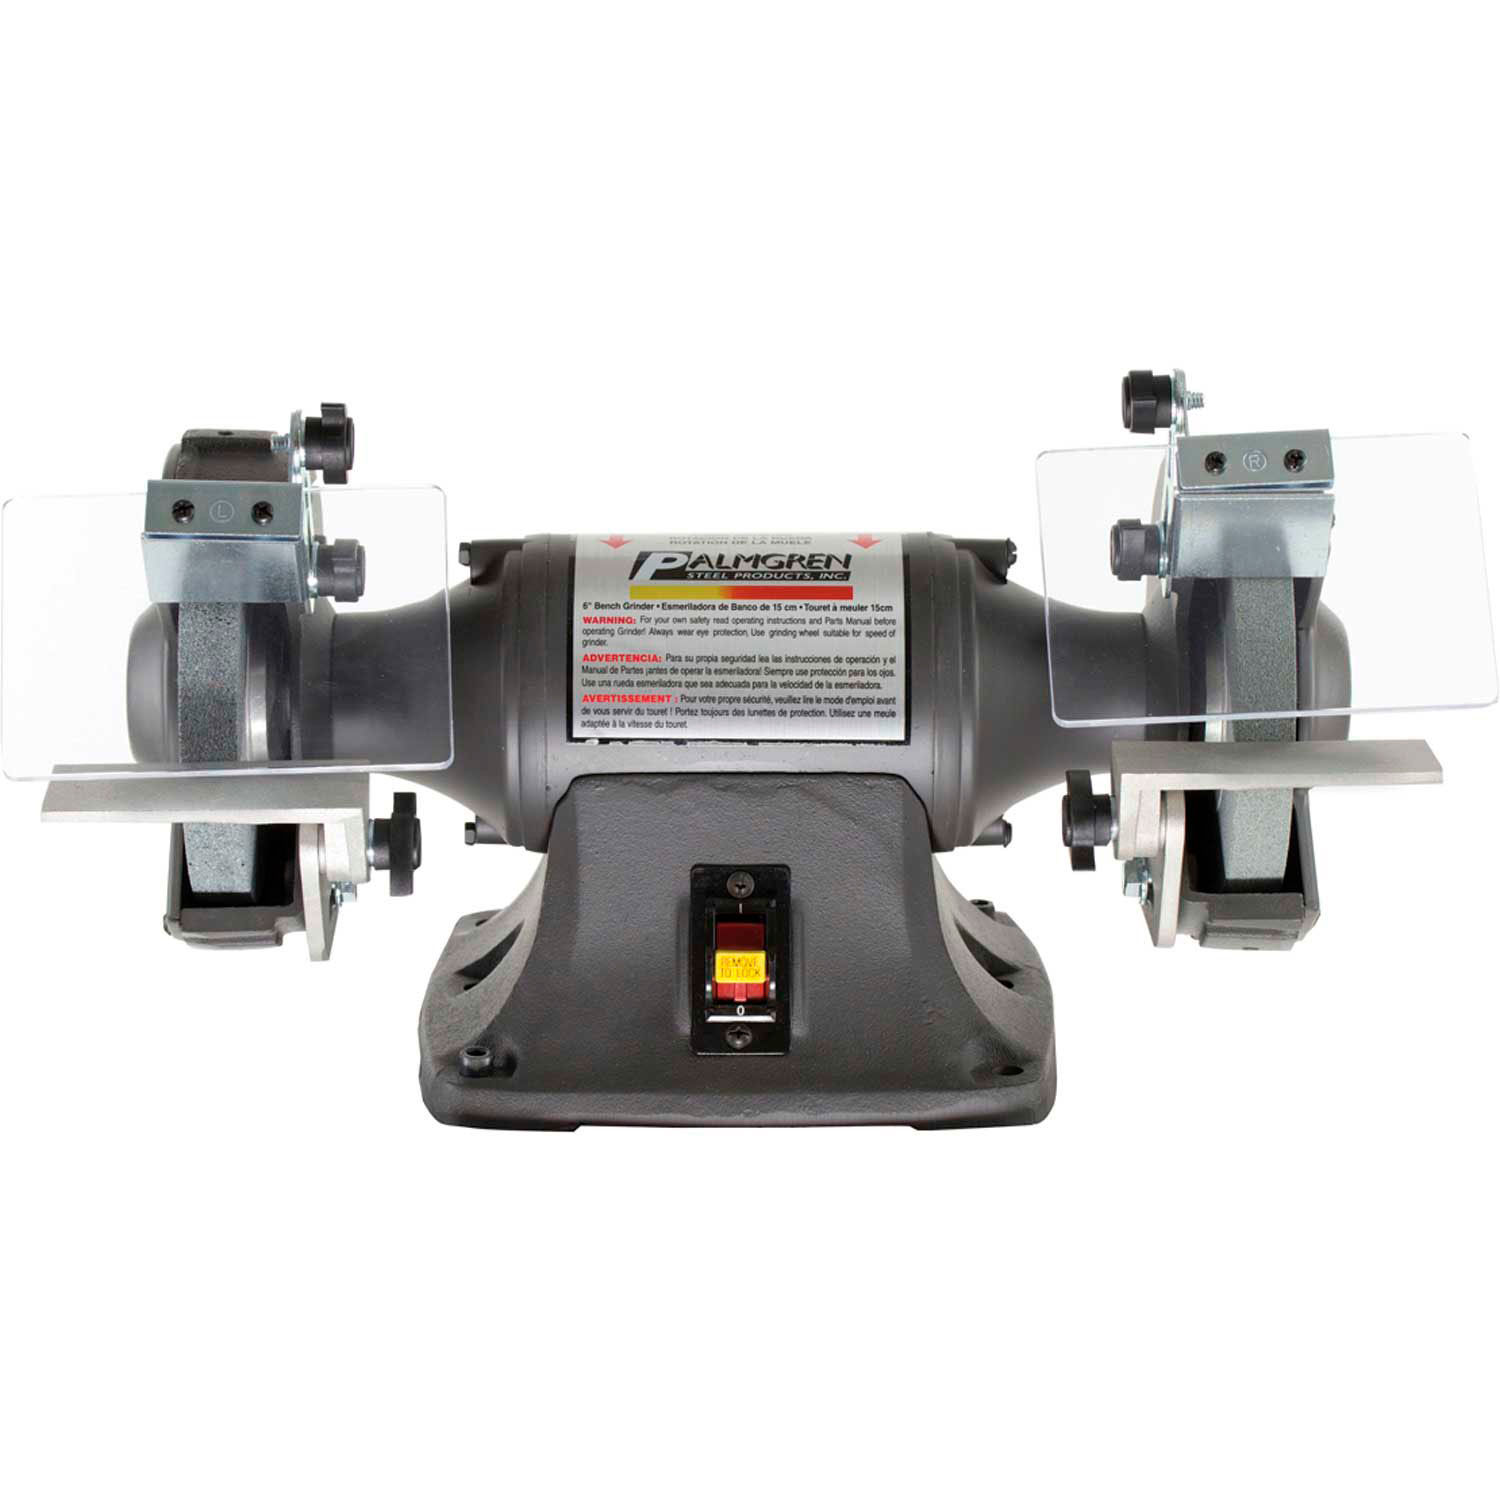 Sensational Grinders Cutoff Grinding Buffing Machines Palmgren Caraccident5 Cool Chair Designs And Ideas Caraccident5Info